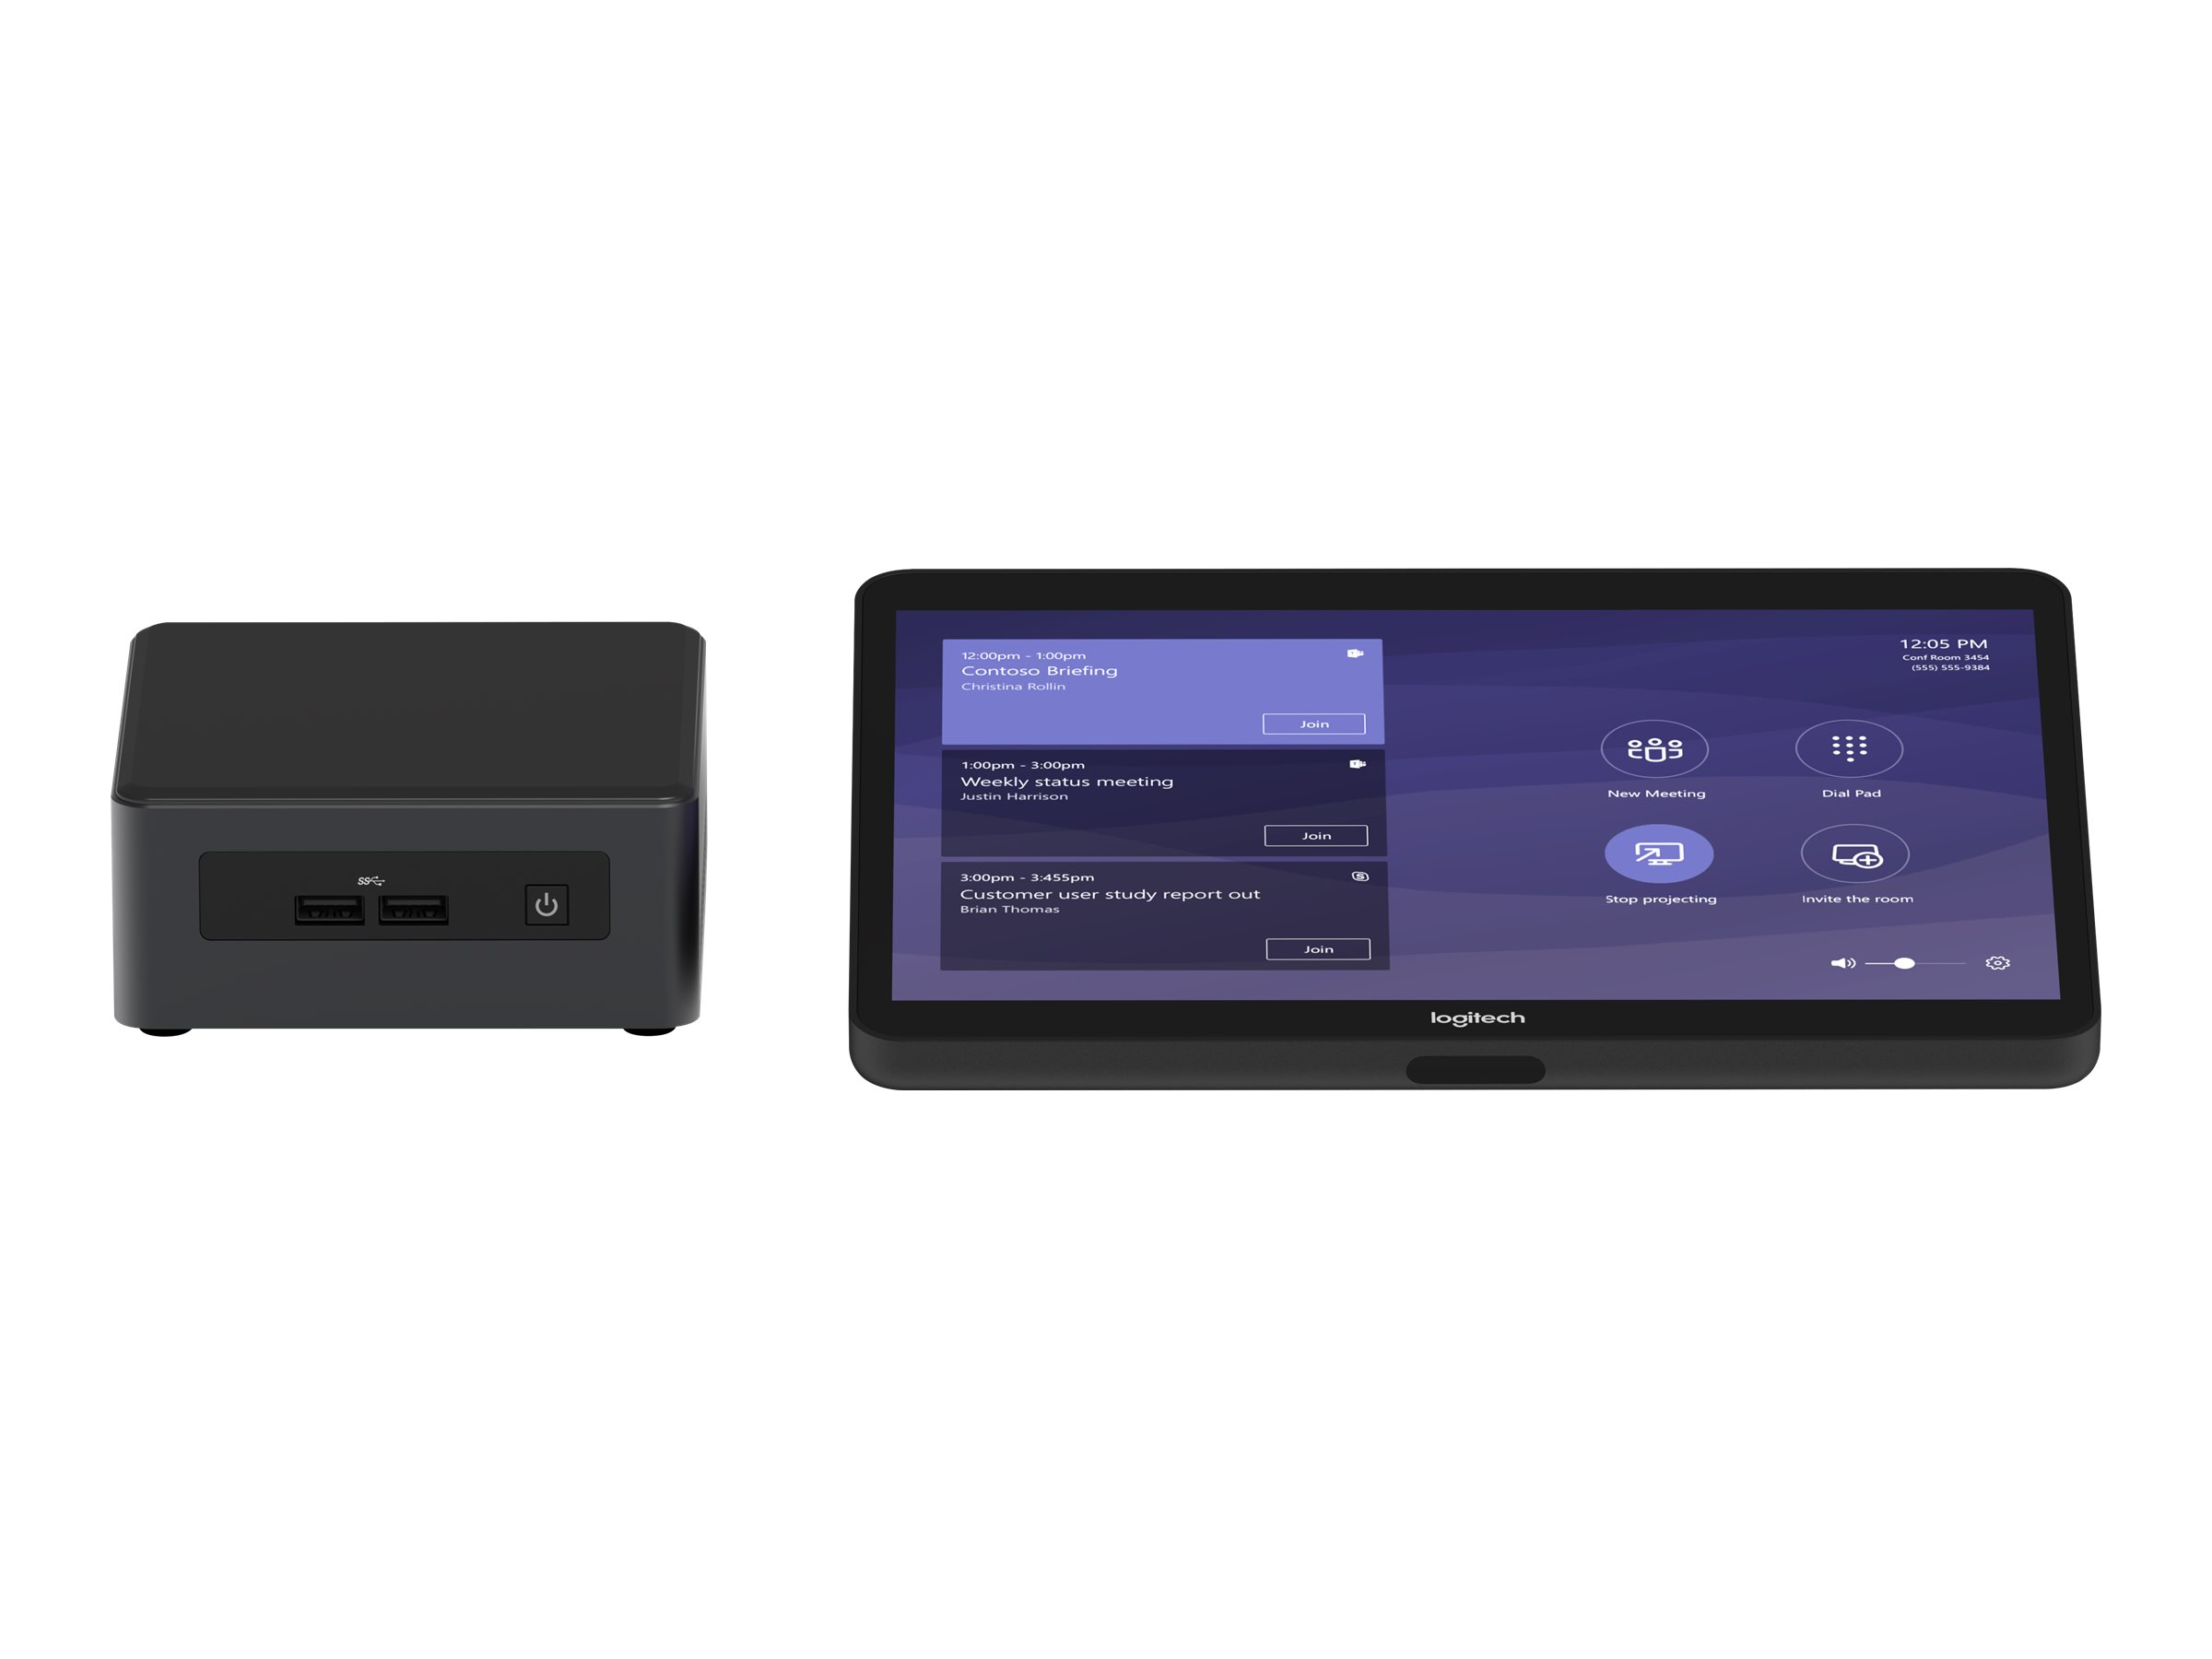 Logitech Tap for Microsoft Teams Base Model - Kit für Videokonferenzen - mit Intel NUC (Core i7), Logitech JumpStart (90 days)